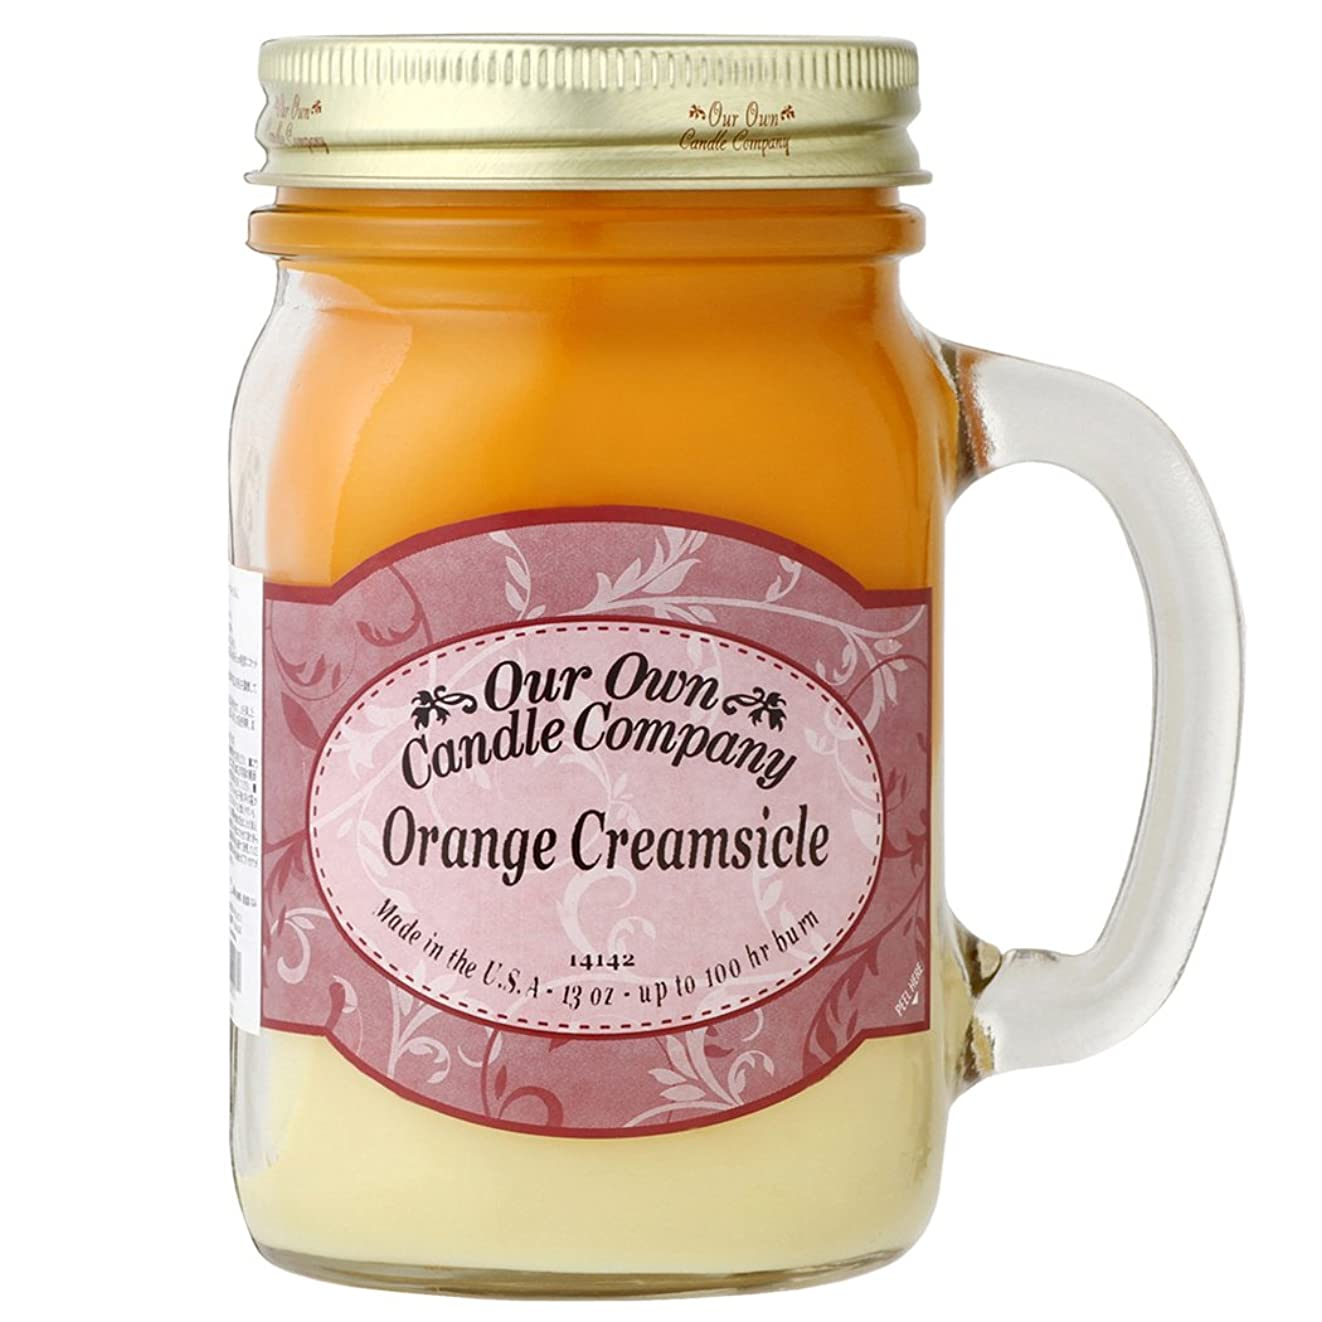 Our Own Candle Company メイソンジャーキャンドル ラージサイズ オレンジクリームシルク OU100085